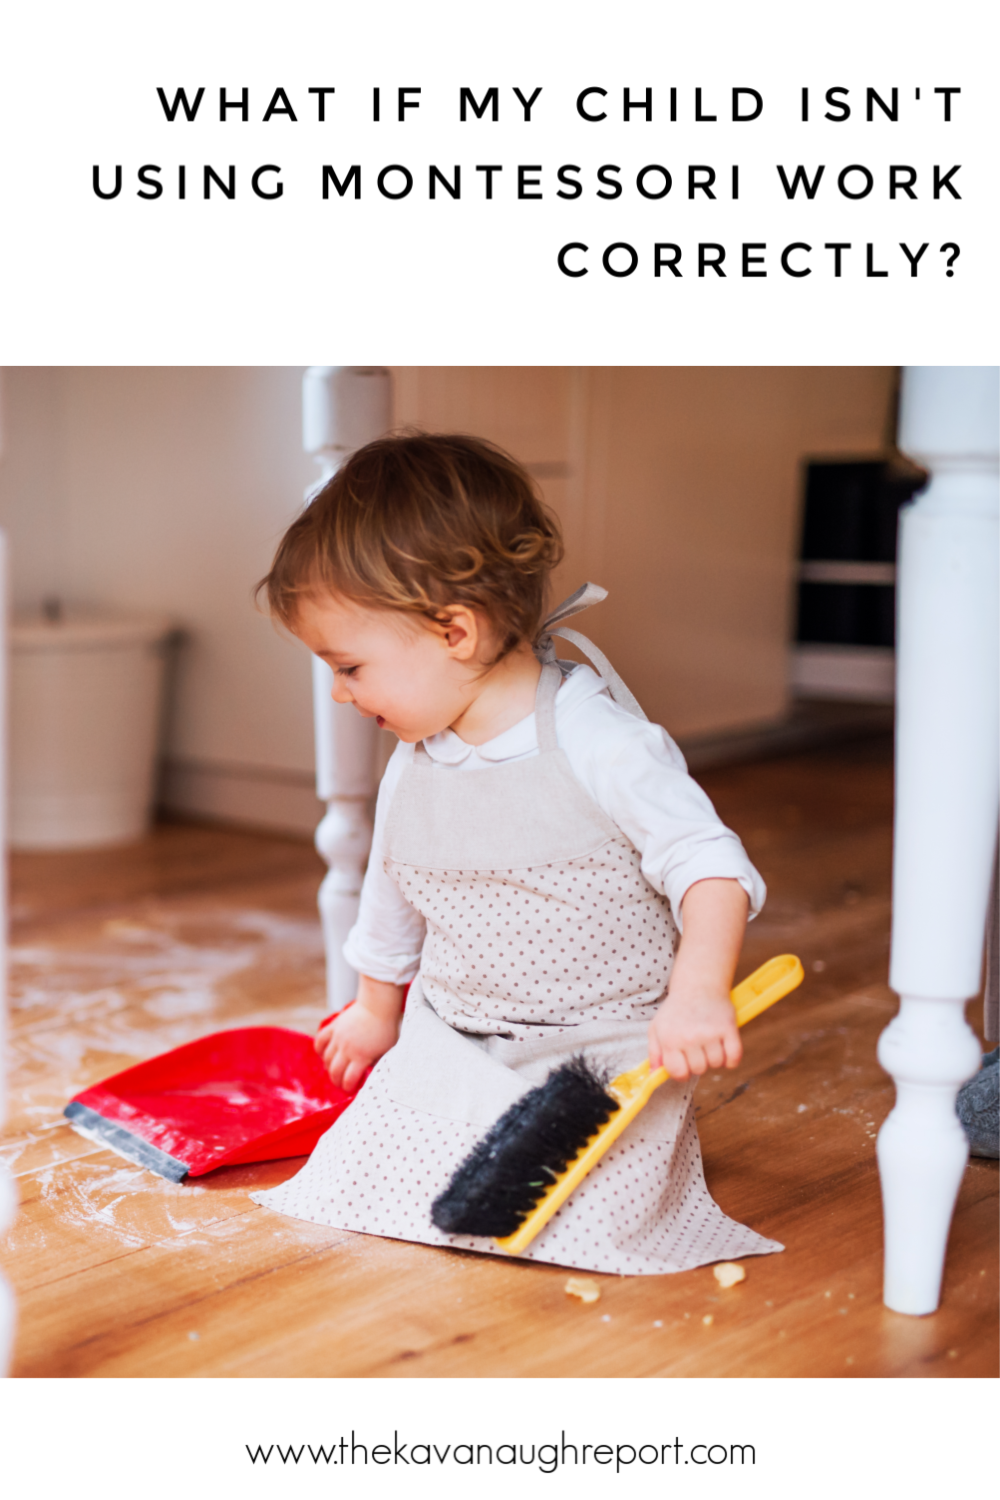 As a Montessori parent here are some thoughts to responding when your child doesn't use toys correctly. Instead of correction, we observe.